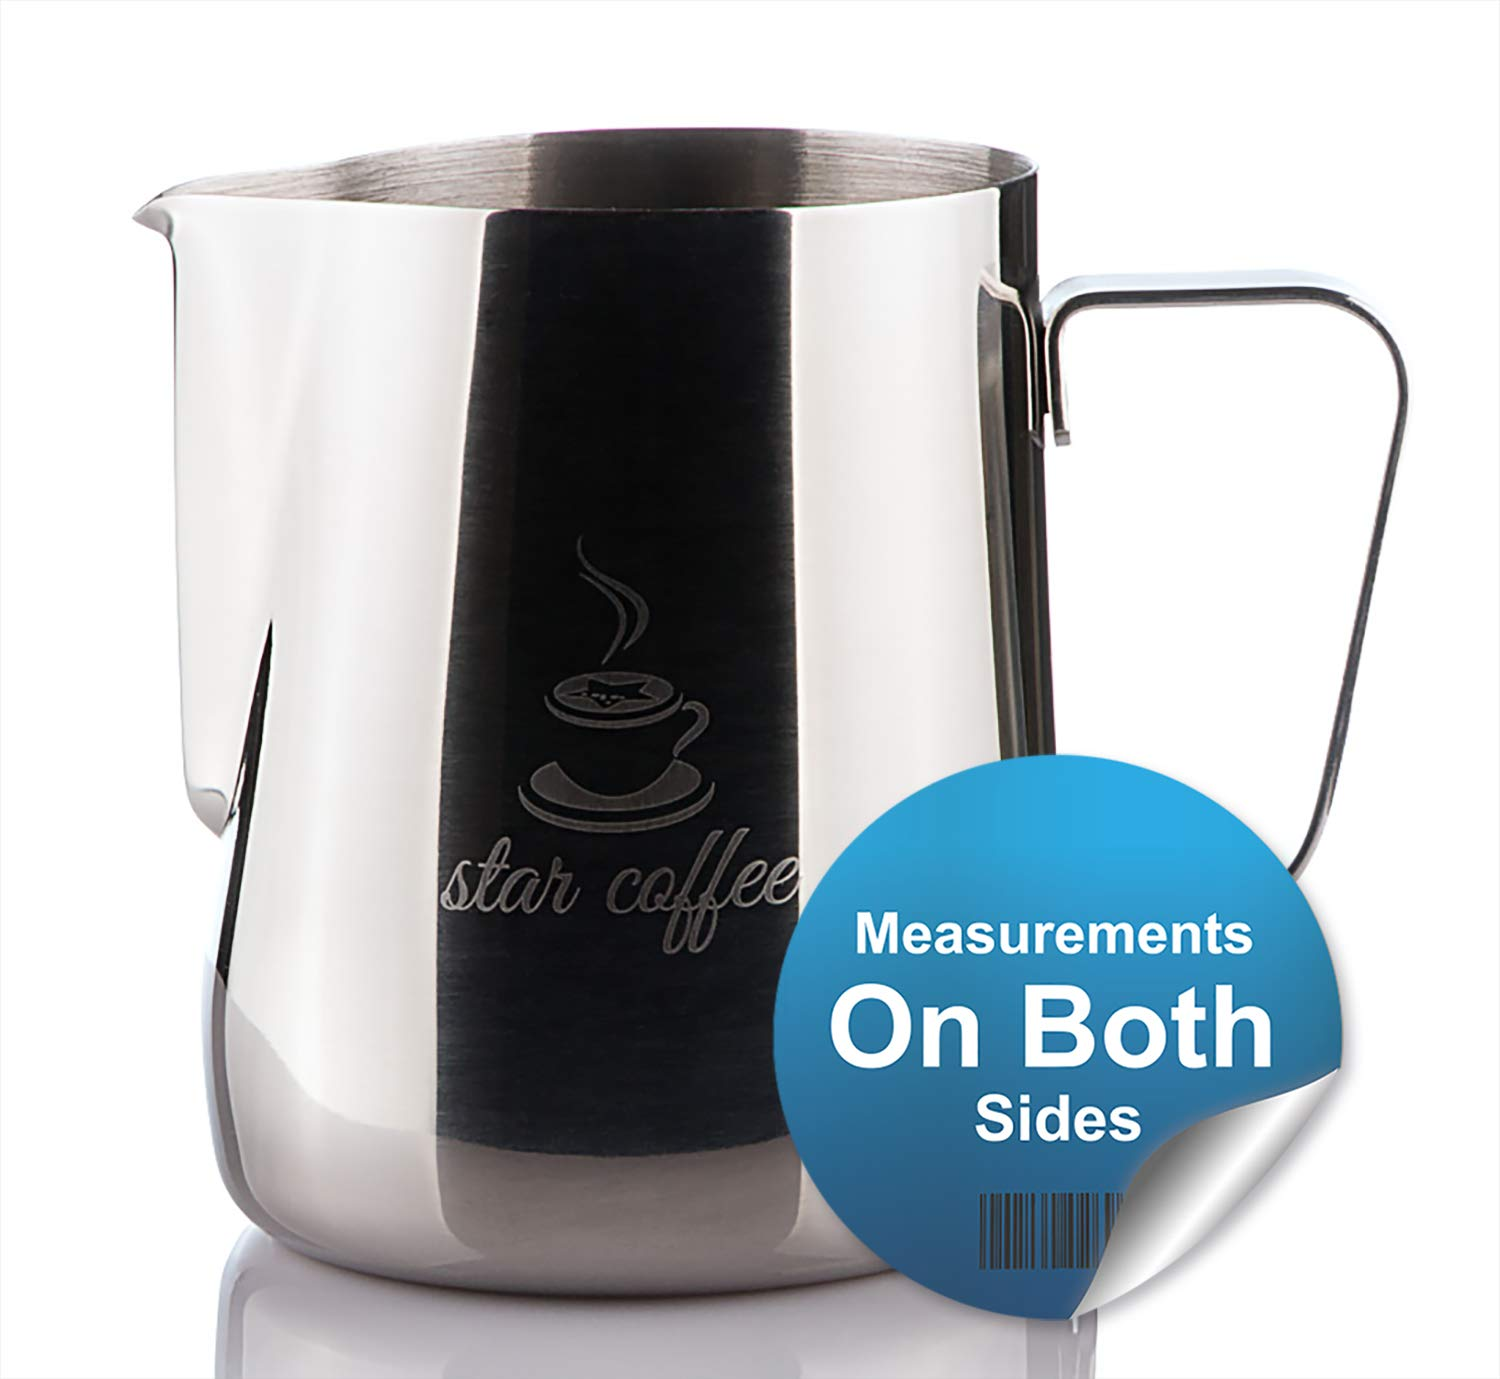 Star Coffee 20, 12 or 30oz Stainless Steel Milk Frothing Pitcher - Measurements on Both Sides Inside Plus eBook & Microfiber Cloth - Perfect for Espresso Machines, Milk Frothers, Latte Art by Star Coffee